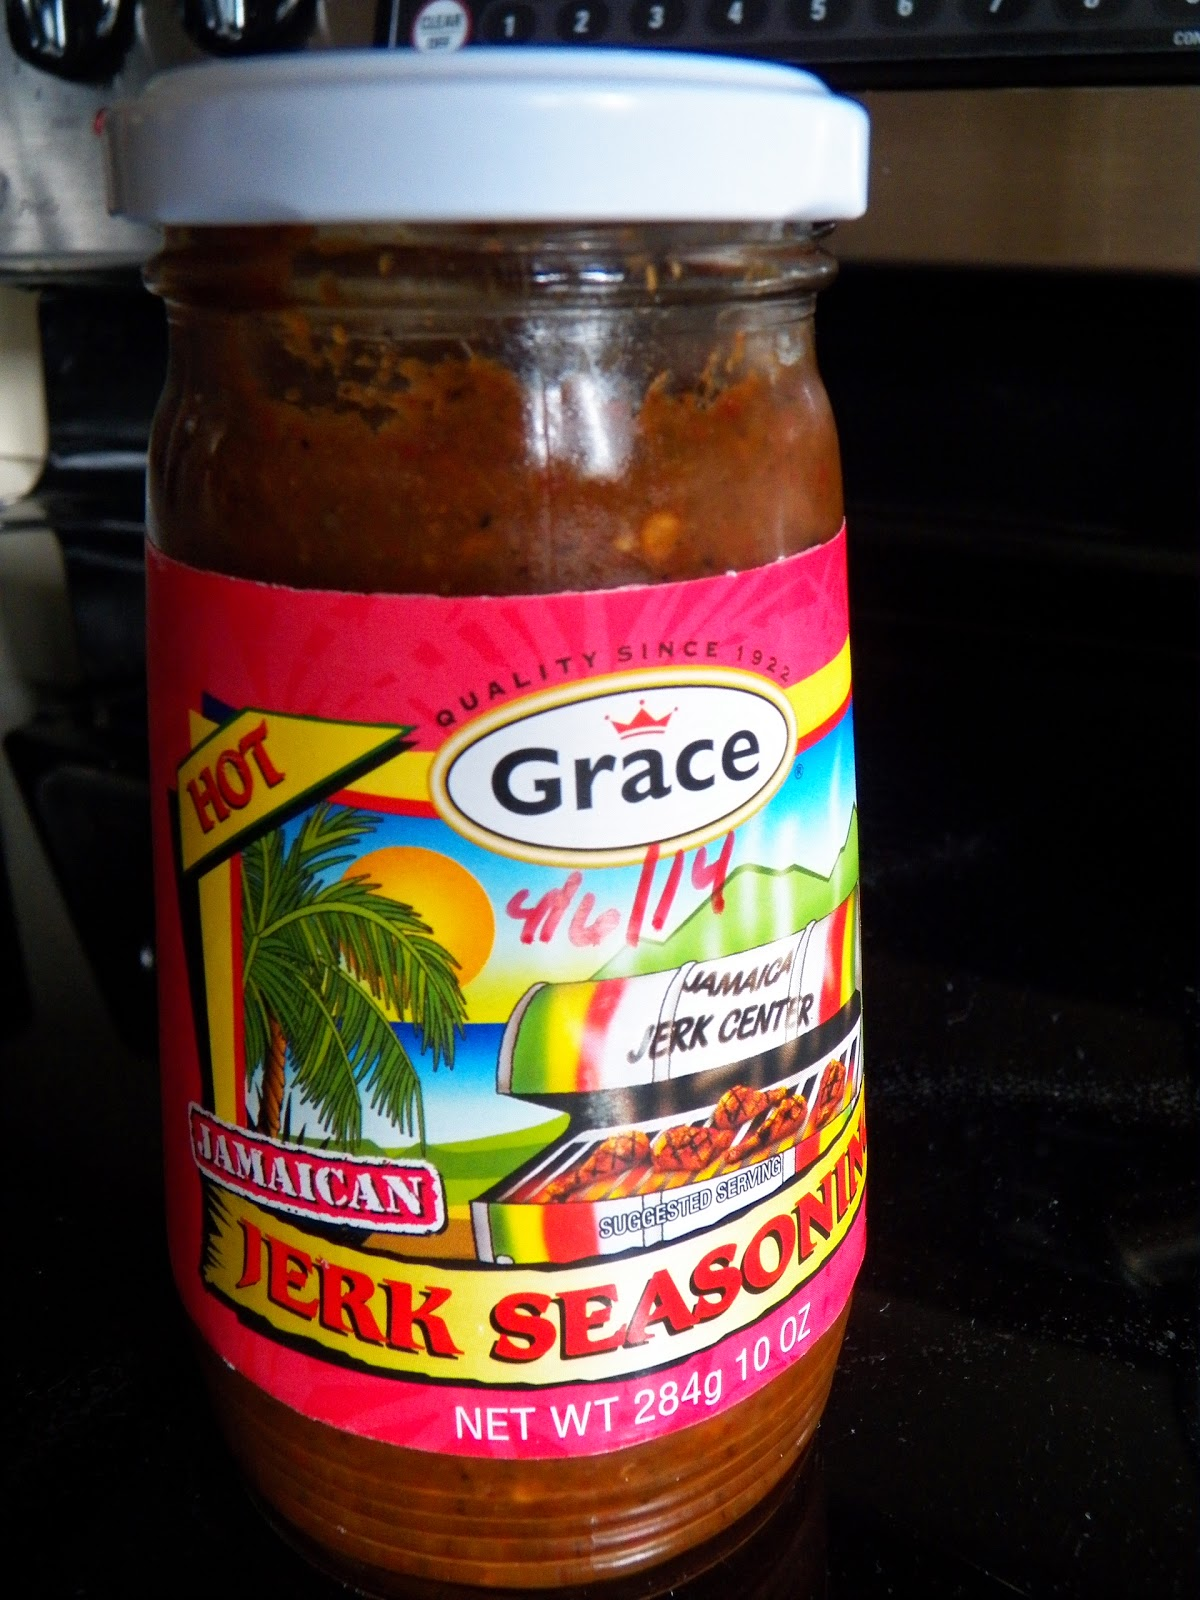 a glass jar of Jamaican jerk seasoning